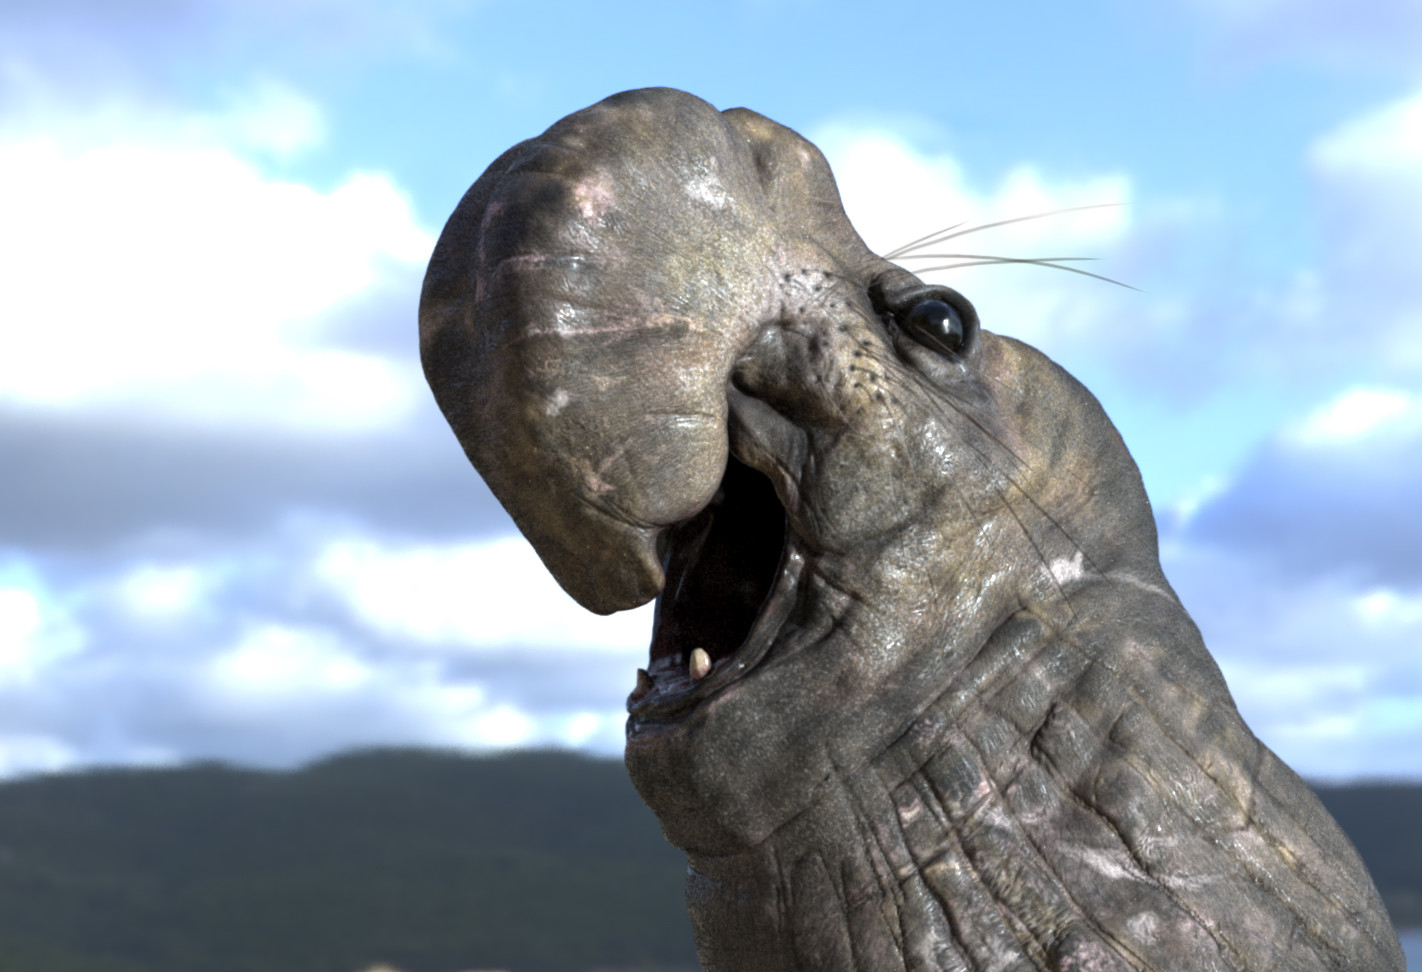 elephant Seal model renered in iRay/Substance Painter